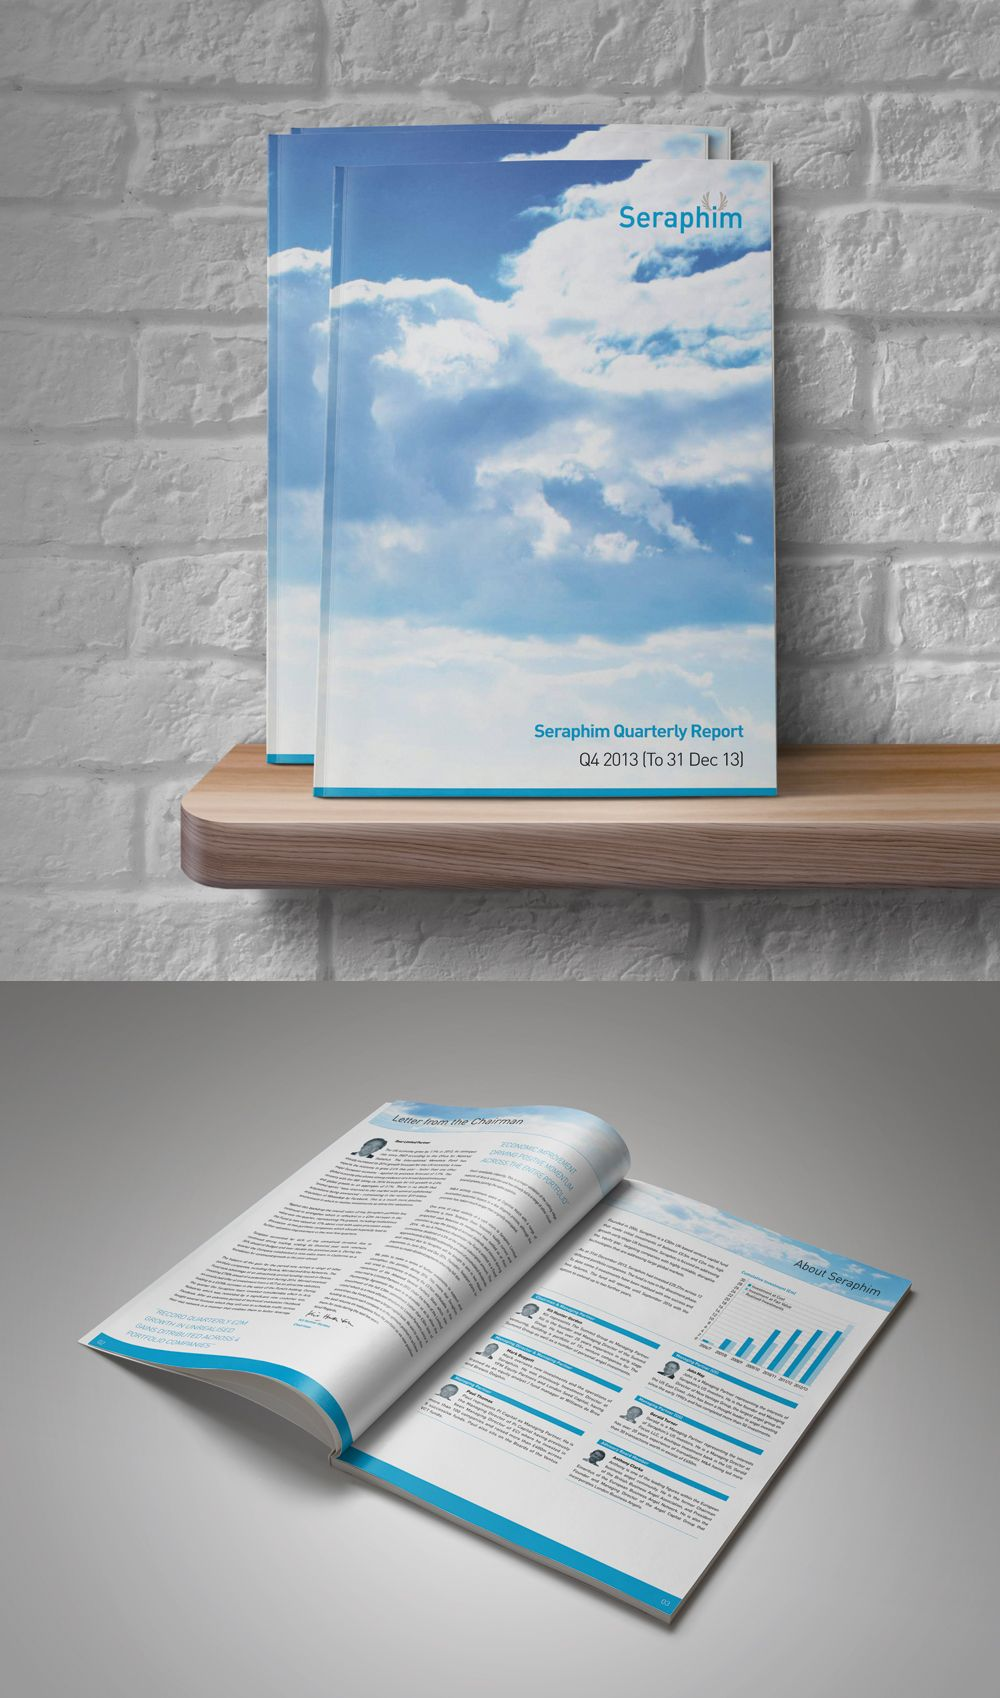 Quarterly financial report design for Seraphim Capital by lunatrix.co.uk #quarterlyreport #reportdesign #financialreport